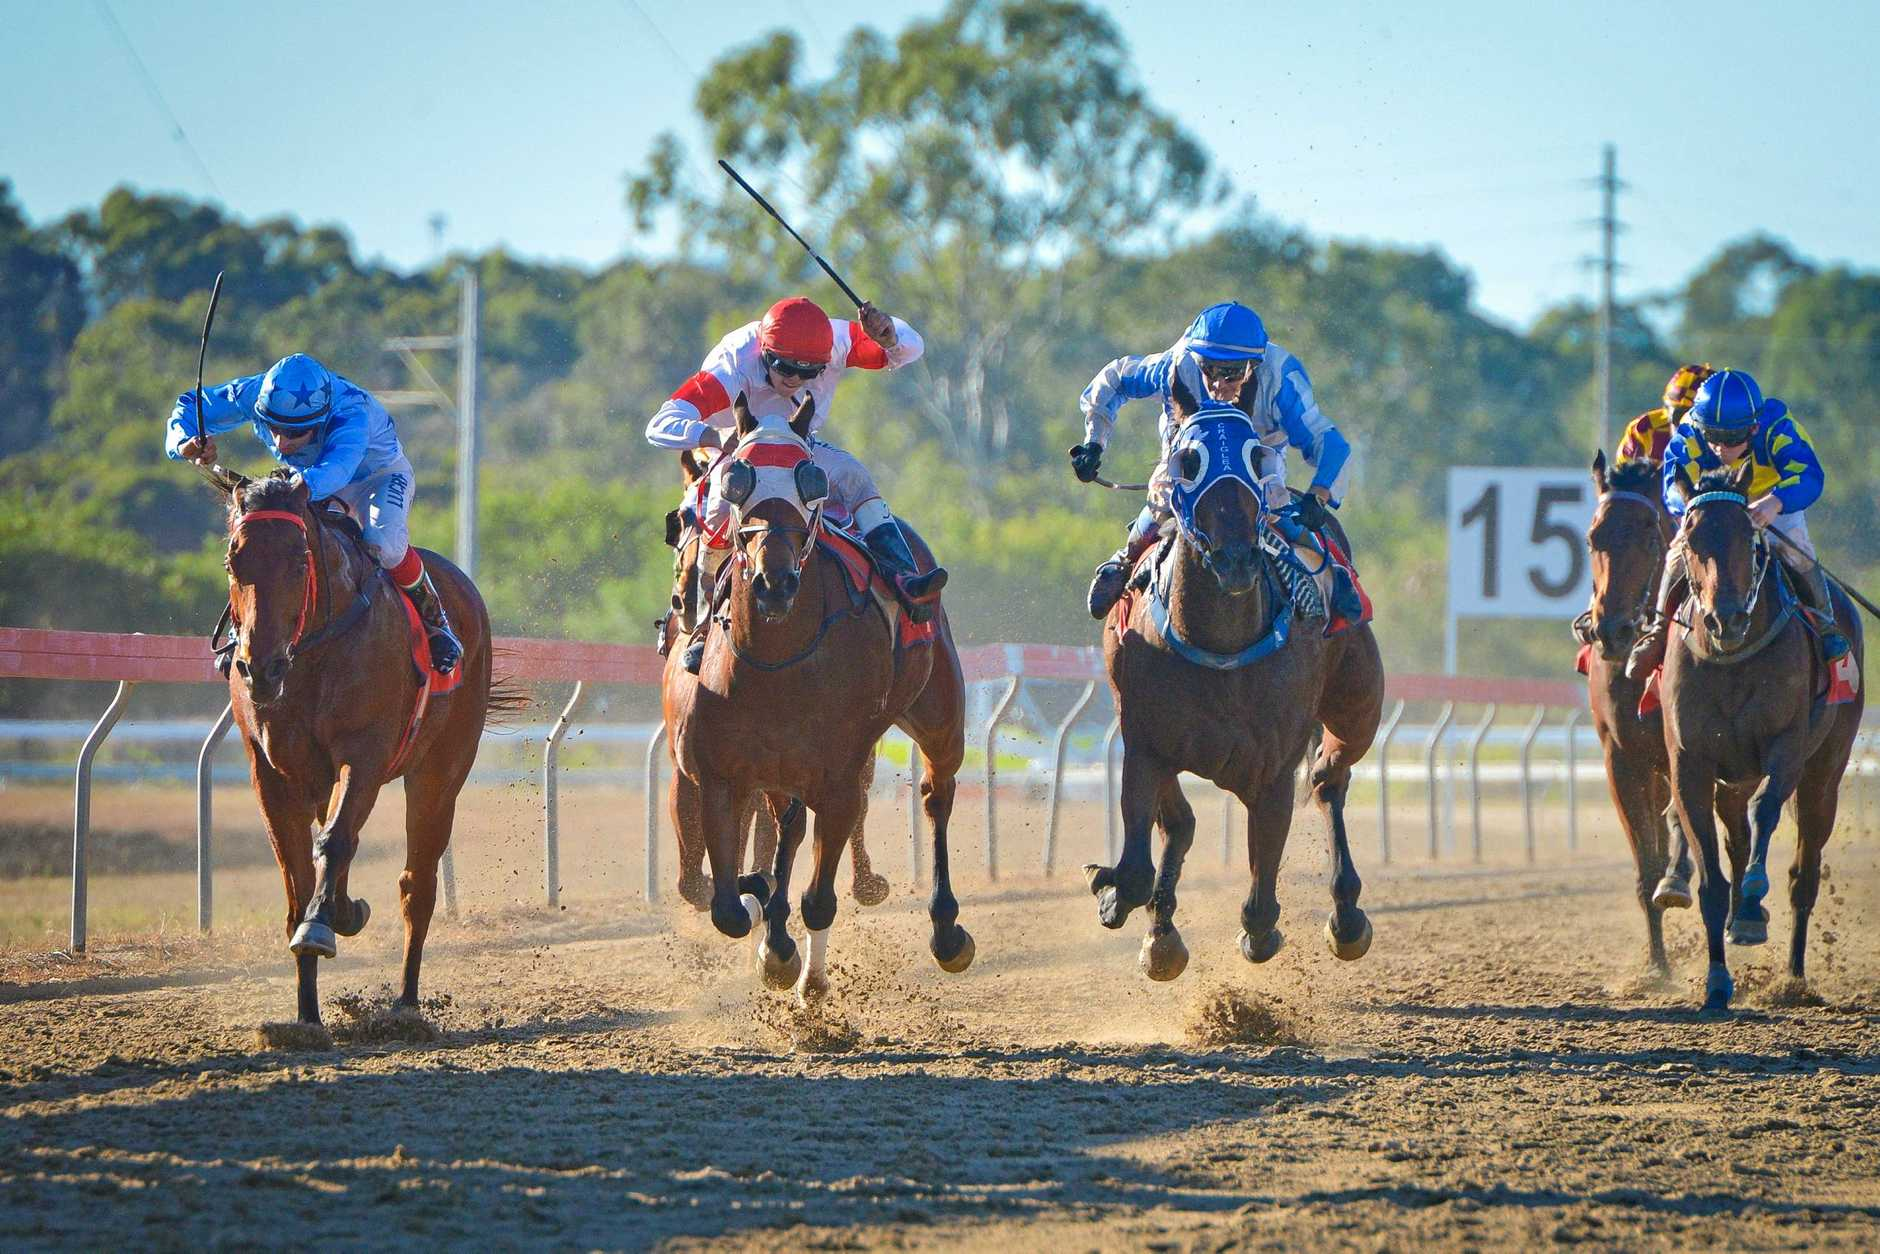 RACE DAY: Ferguson Park will feature an exciting five-race meet this Saturday.